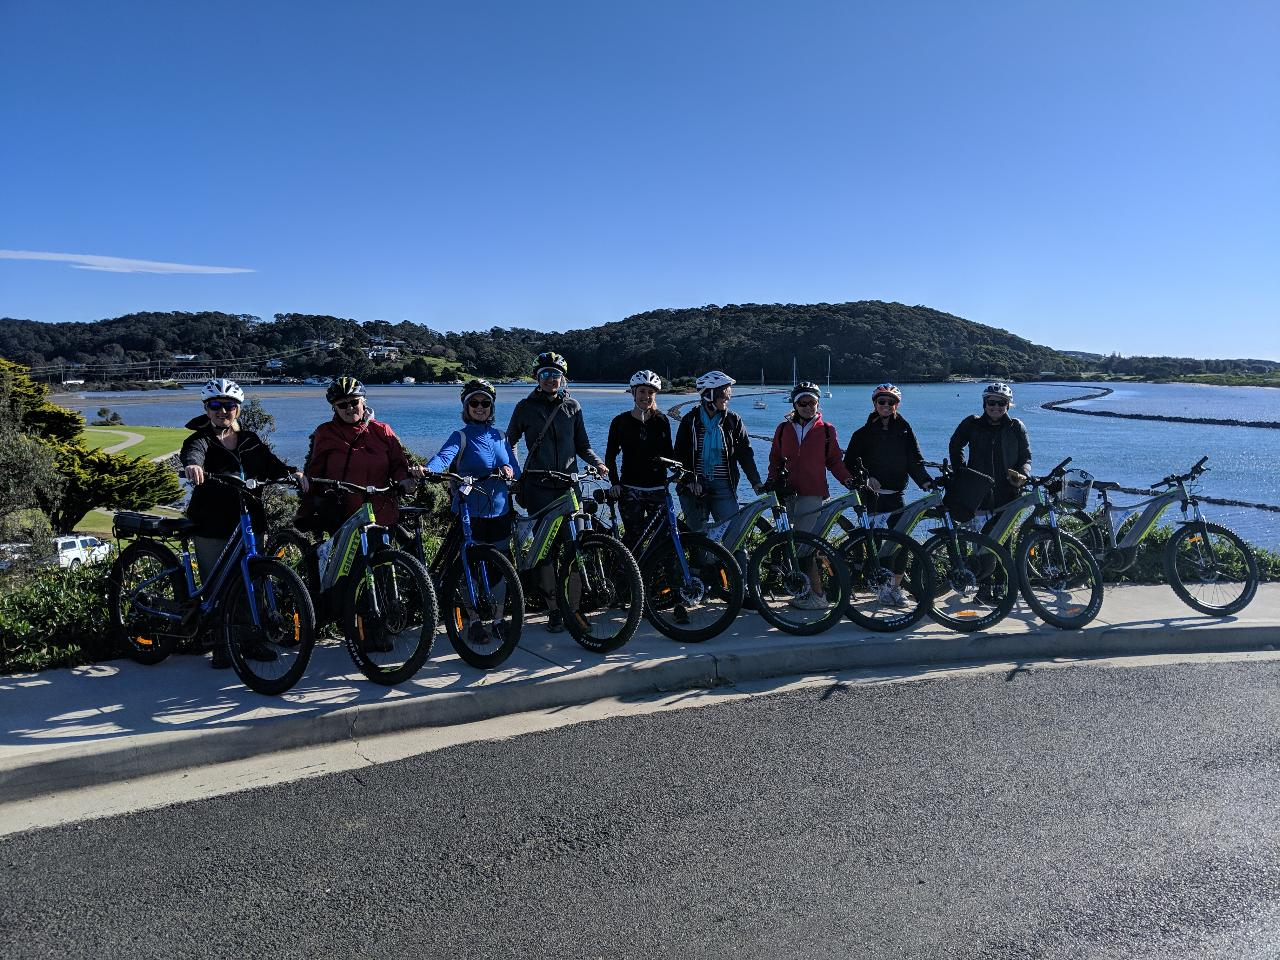 SMALL GROUP FULLY GUIDED E-BIKE TOUR -  Full Day - Off the beaten track -  Pub n Grub Hinterland Tour Narooma to Tilba including lunch at The Dromedary Hotel